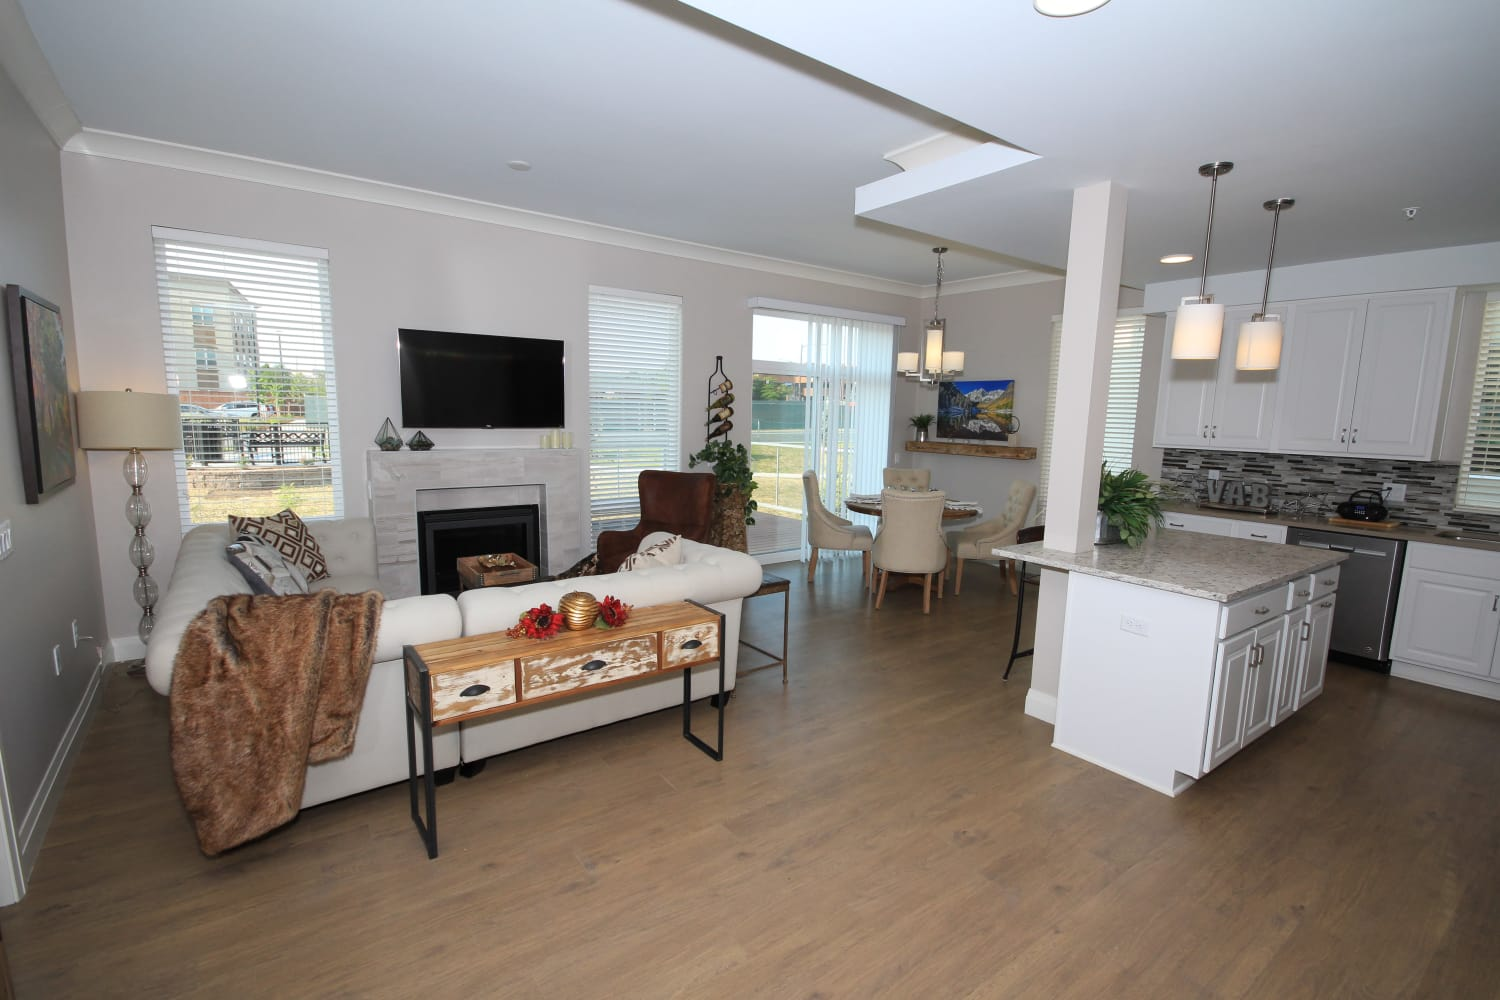 Interior view of the living room of one of the spacious independent living homes at Village at Belmar